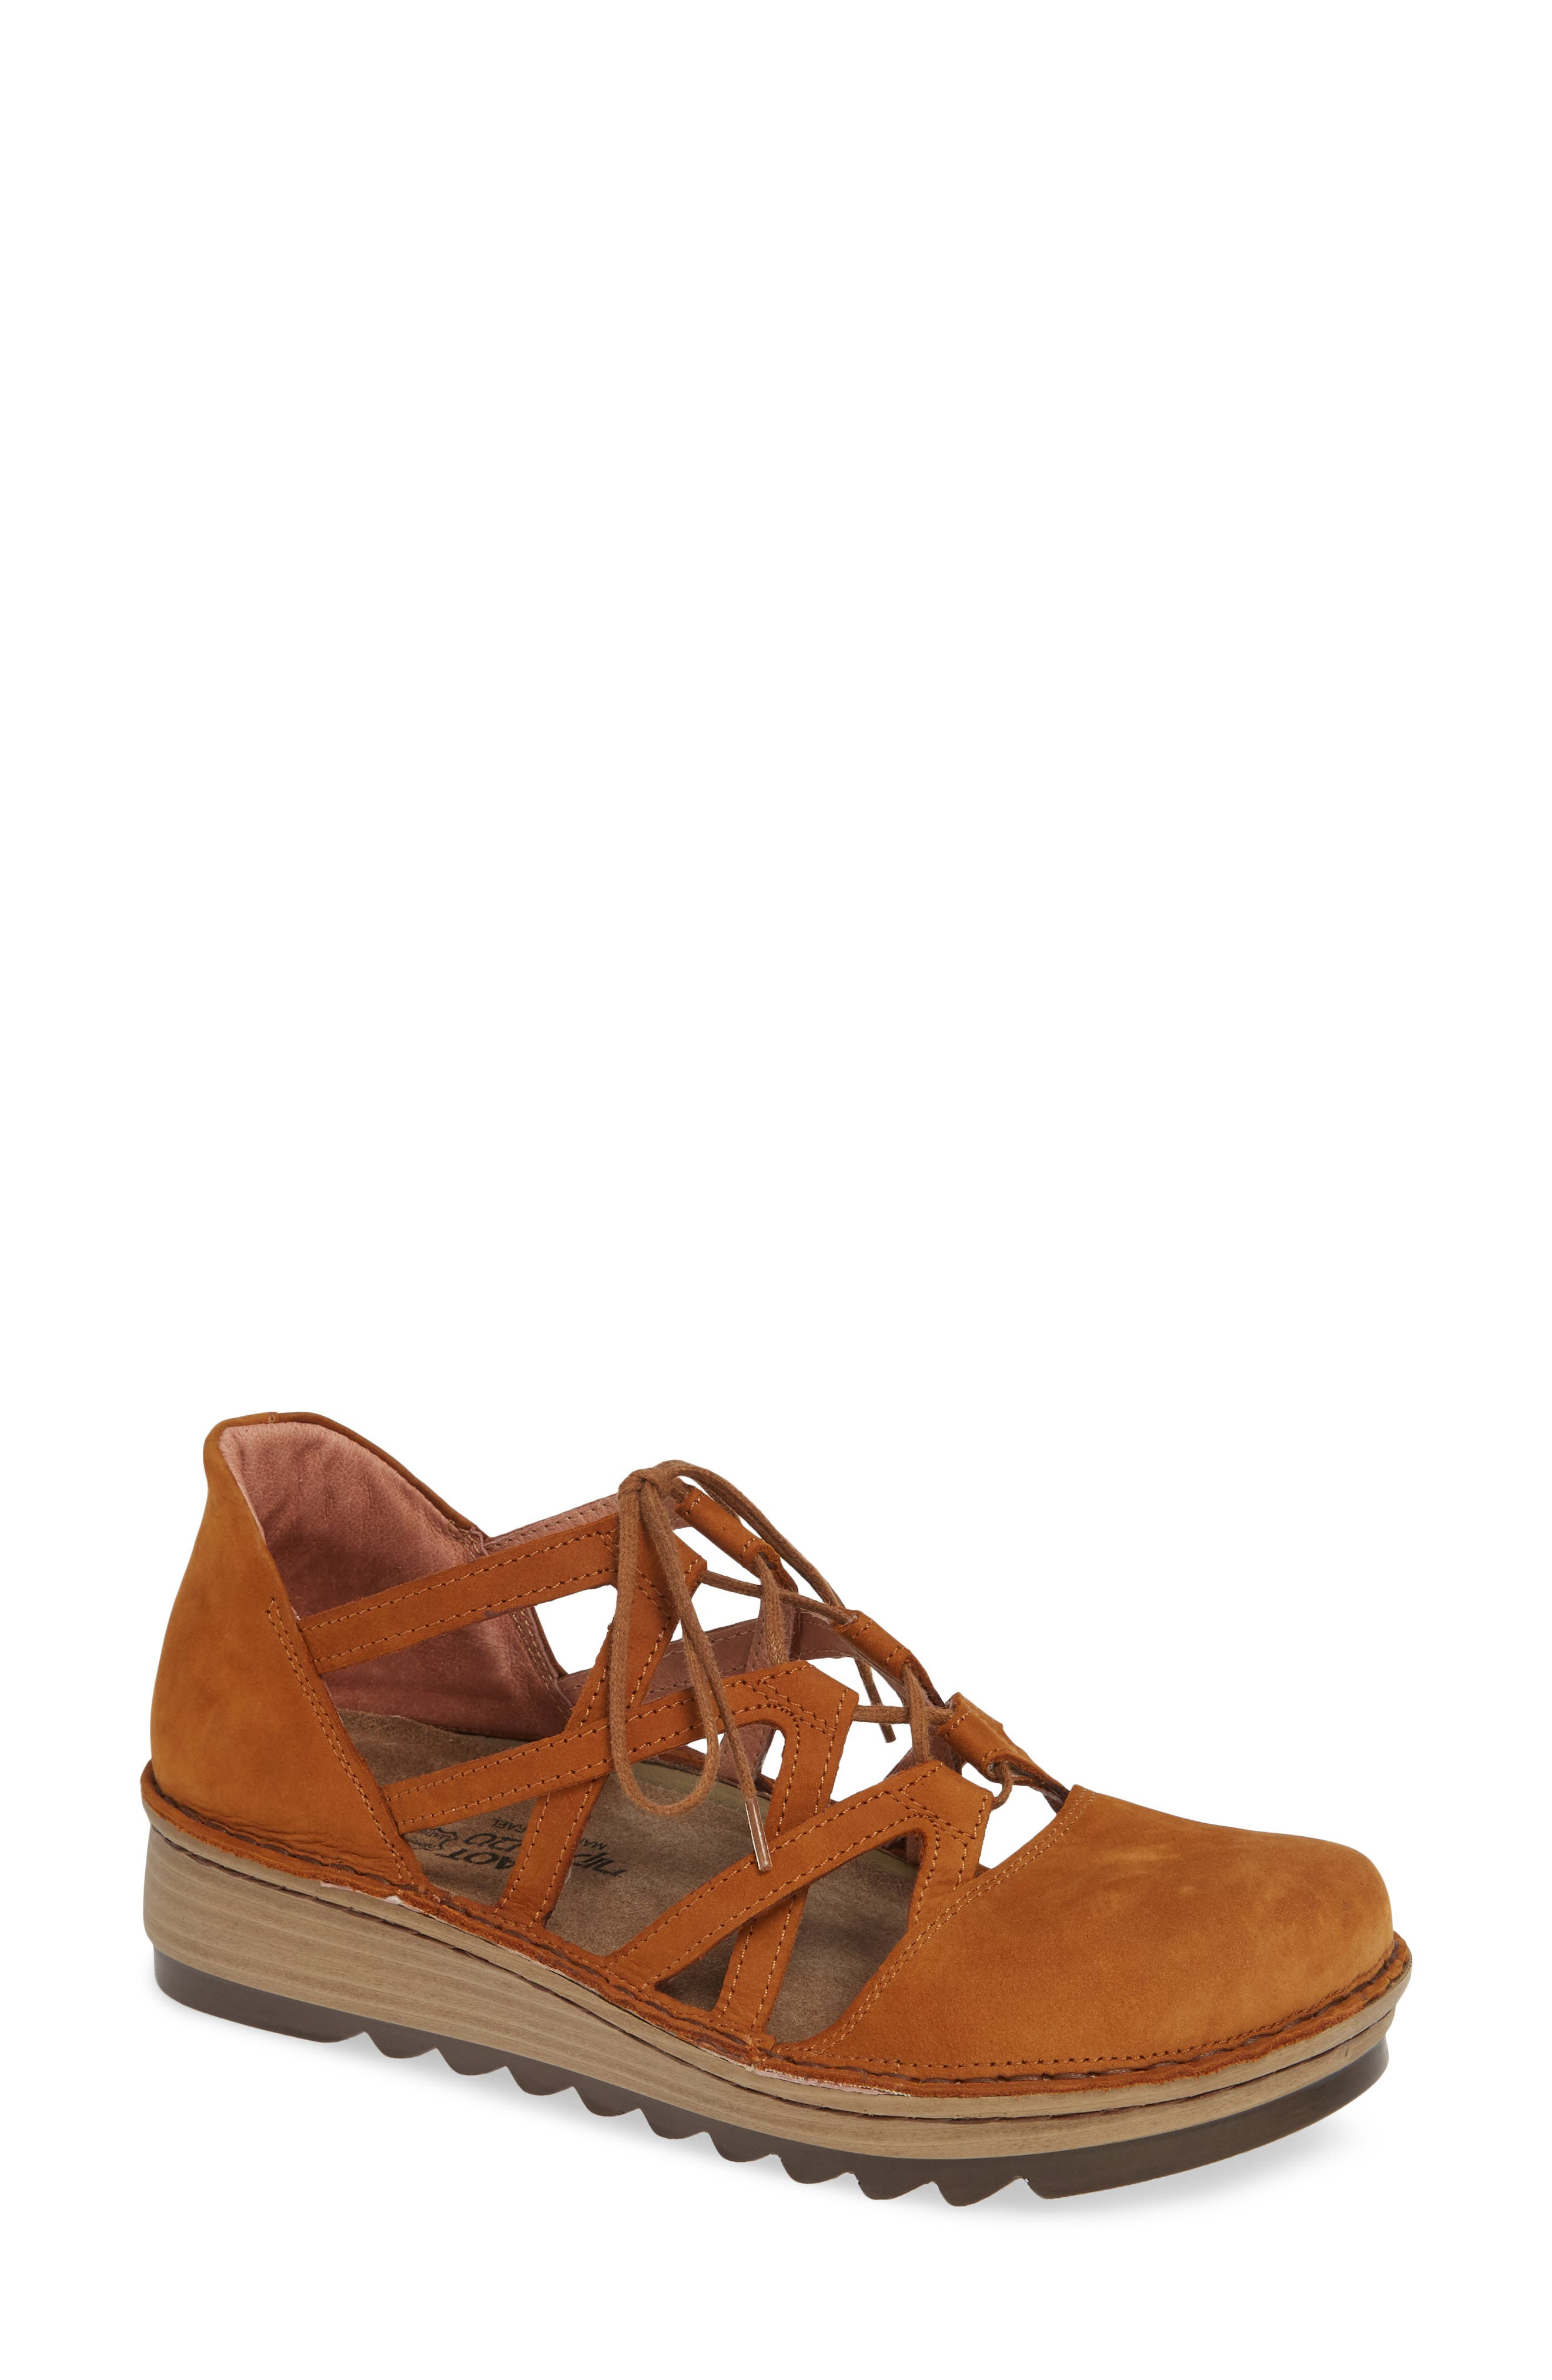 Naot Calathea Ghillie Laced Wedge, Yellow